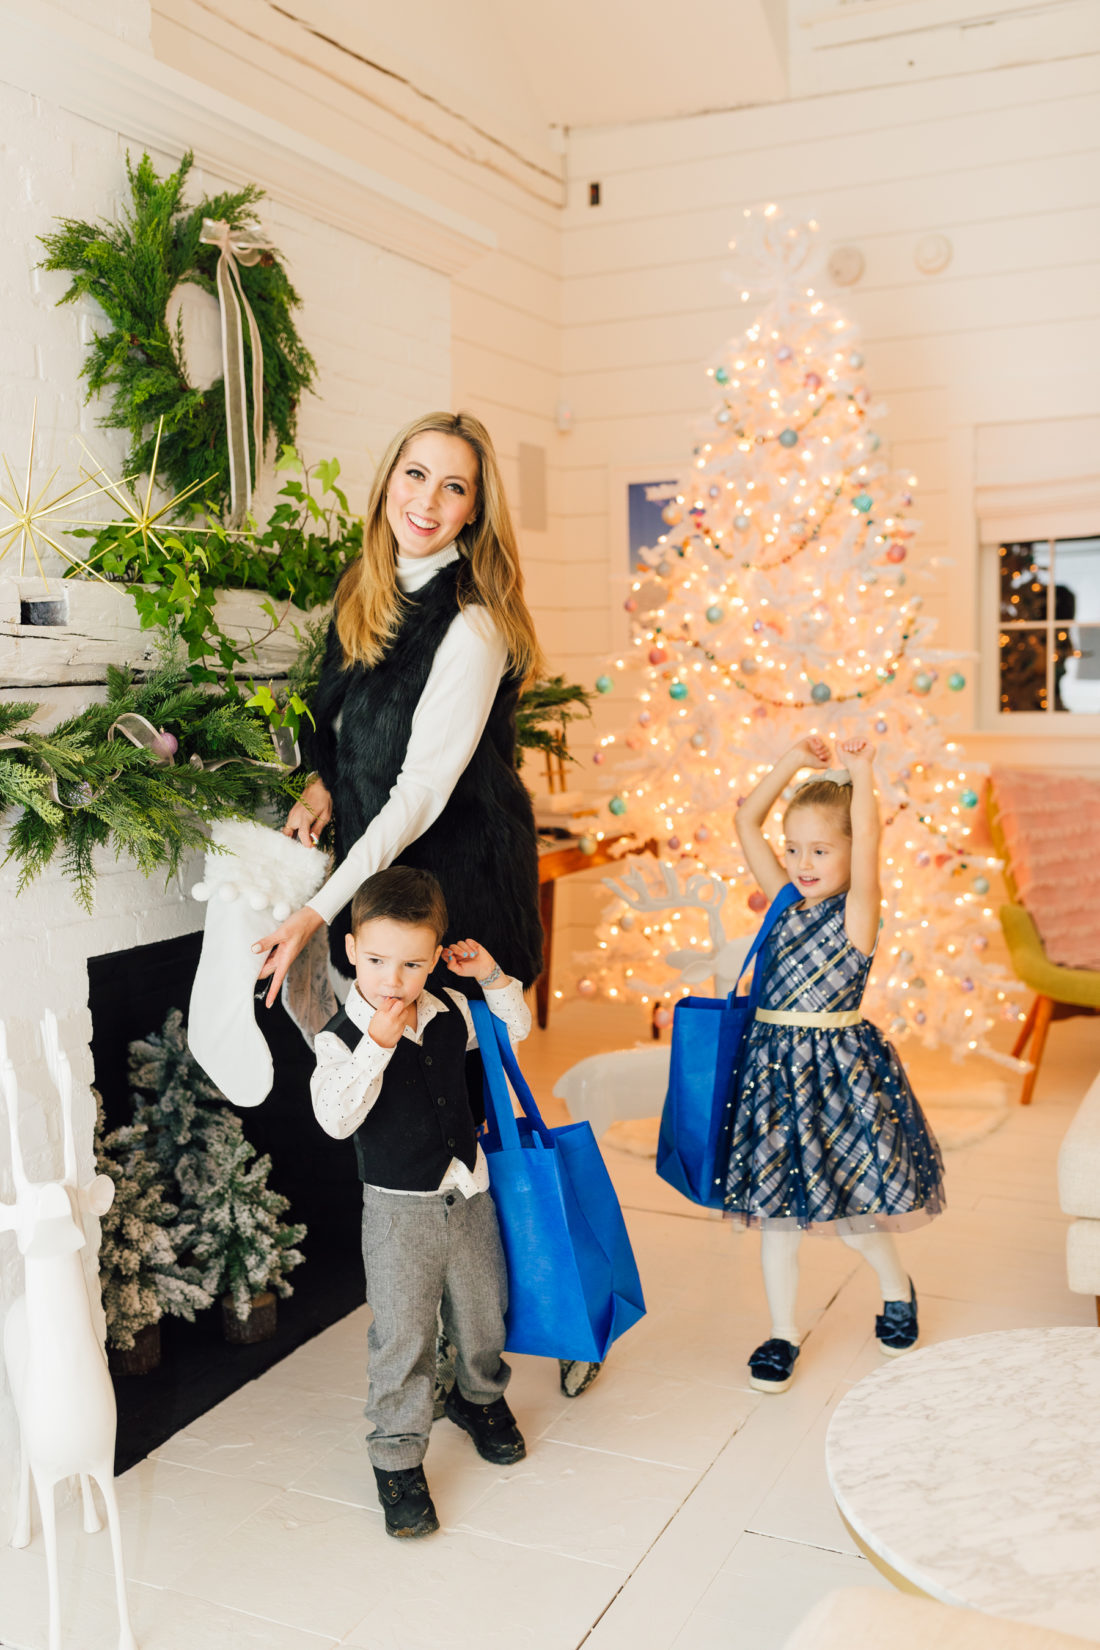 Eva Amurri unboxes products purchased at Walmart